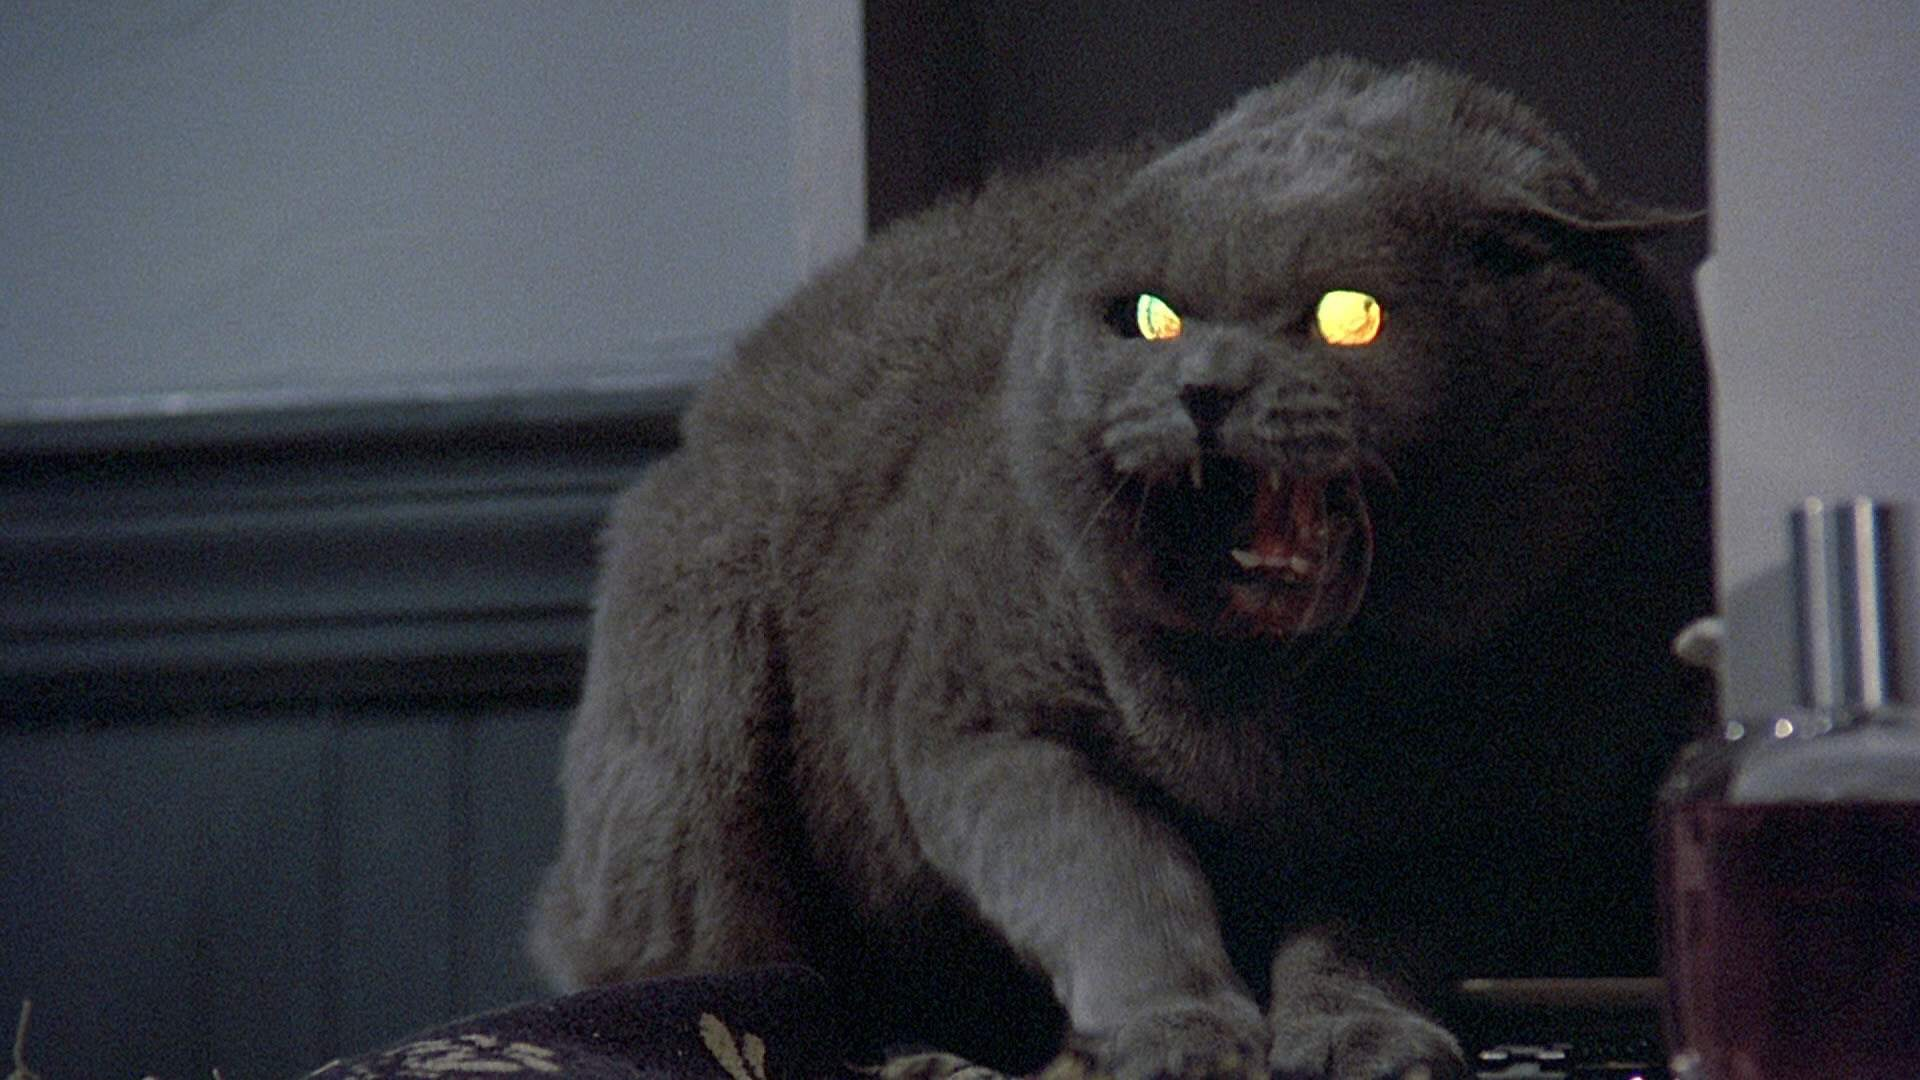 the-writer-of-the-pet-sematary-remake-says-it-will-be-scariest-stephen-king-movies-ever-social.jpg